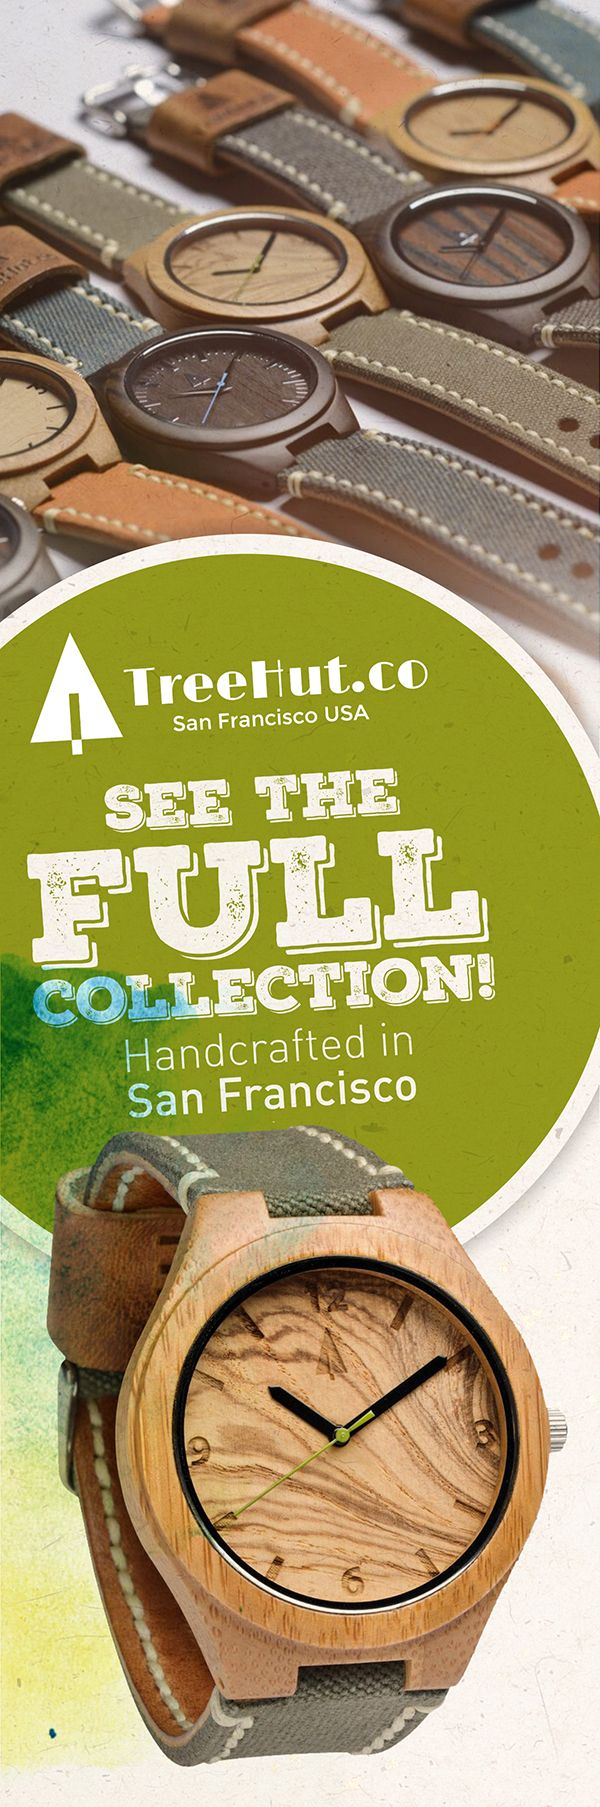 Handcrafted in San Francisco. Nature inspired designs that make the perfect #gift for your special ones! See the full collection at Treehut Co.